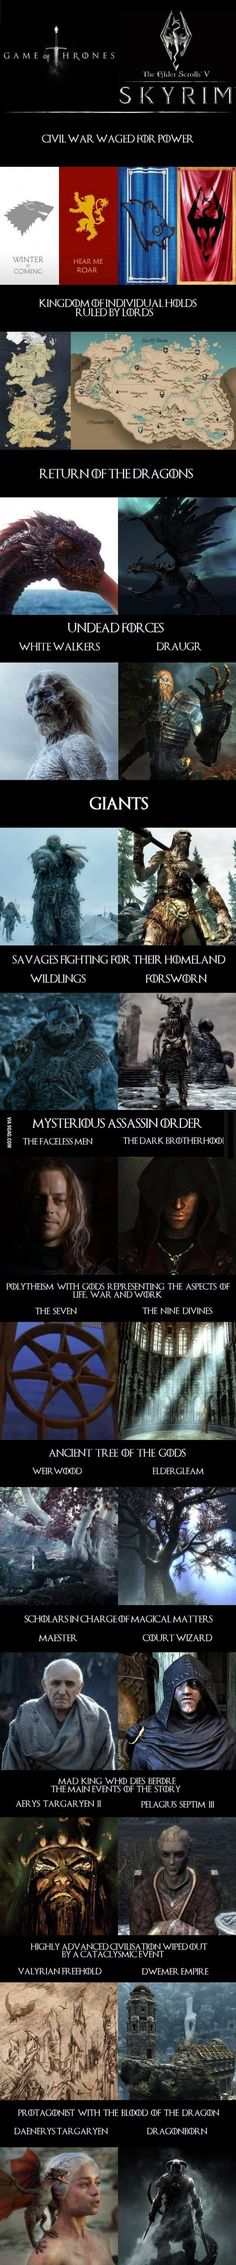 The similarities of the Games of Thrones and Skyrim are astounding. Even the faces of the characters have analogous features.  http://9gag.com/gag/aPG8rjB